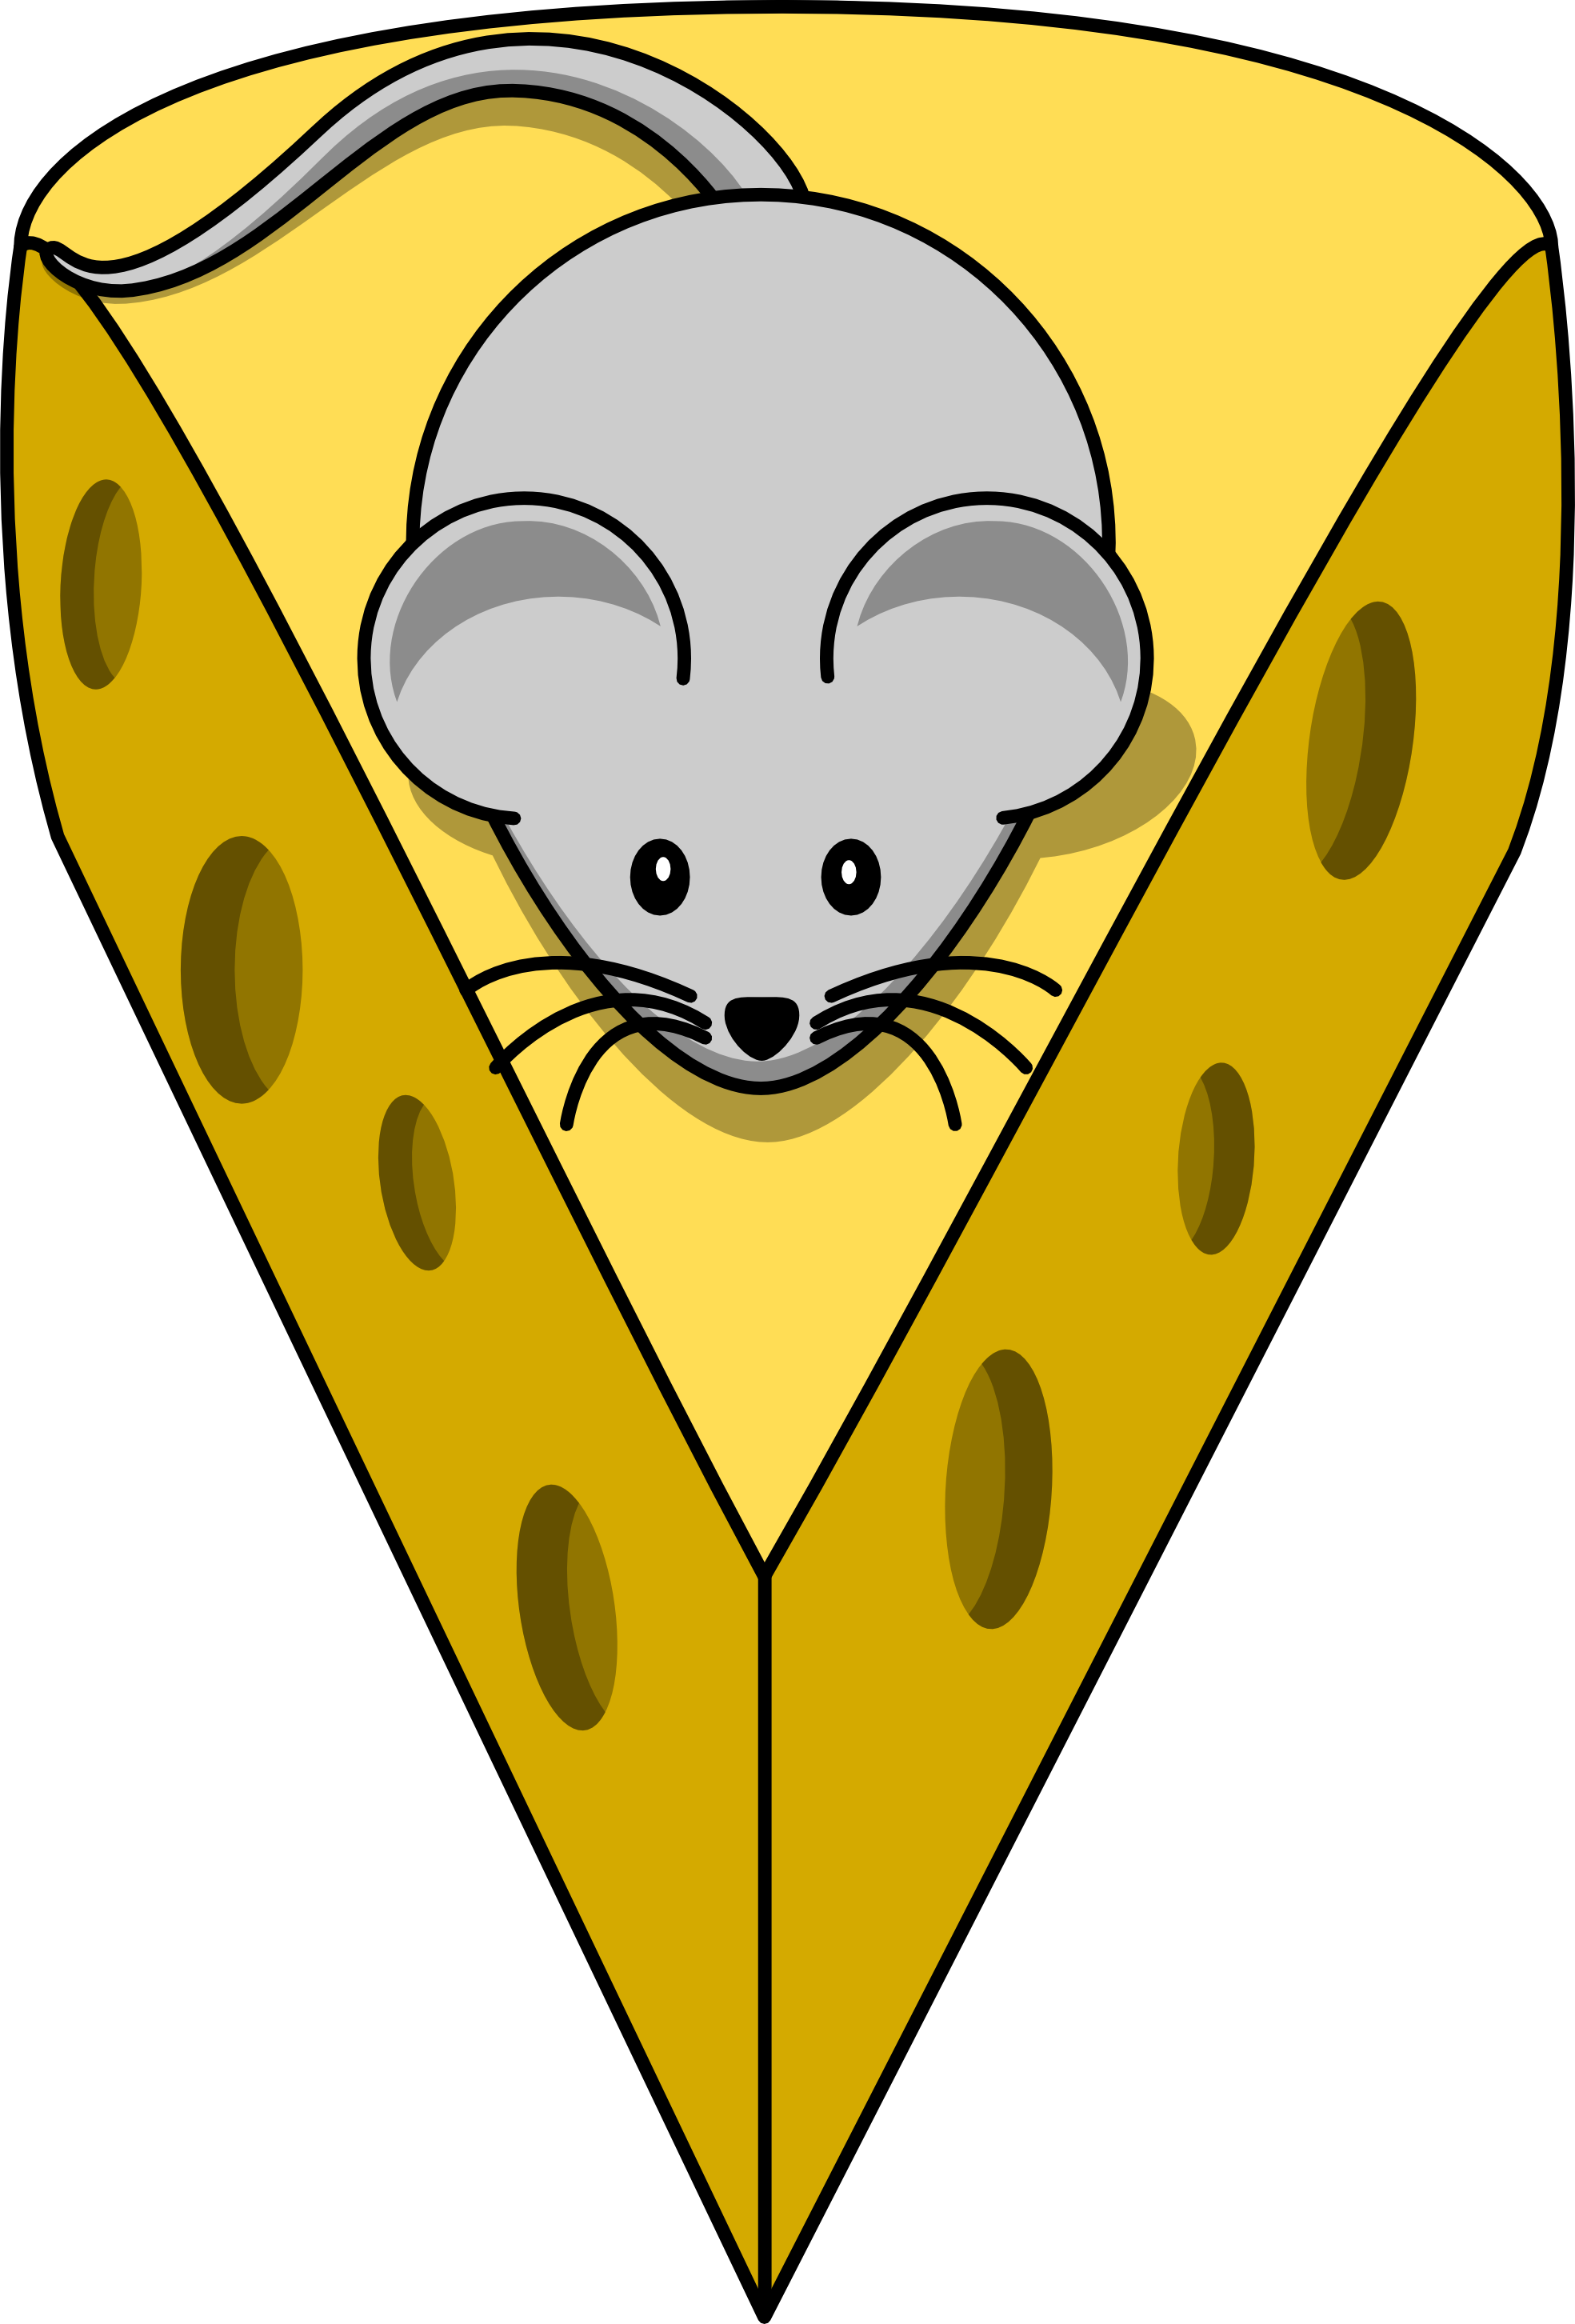 Images For Cheese Clip Art